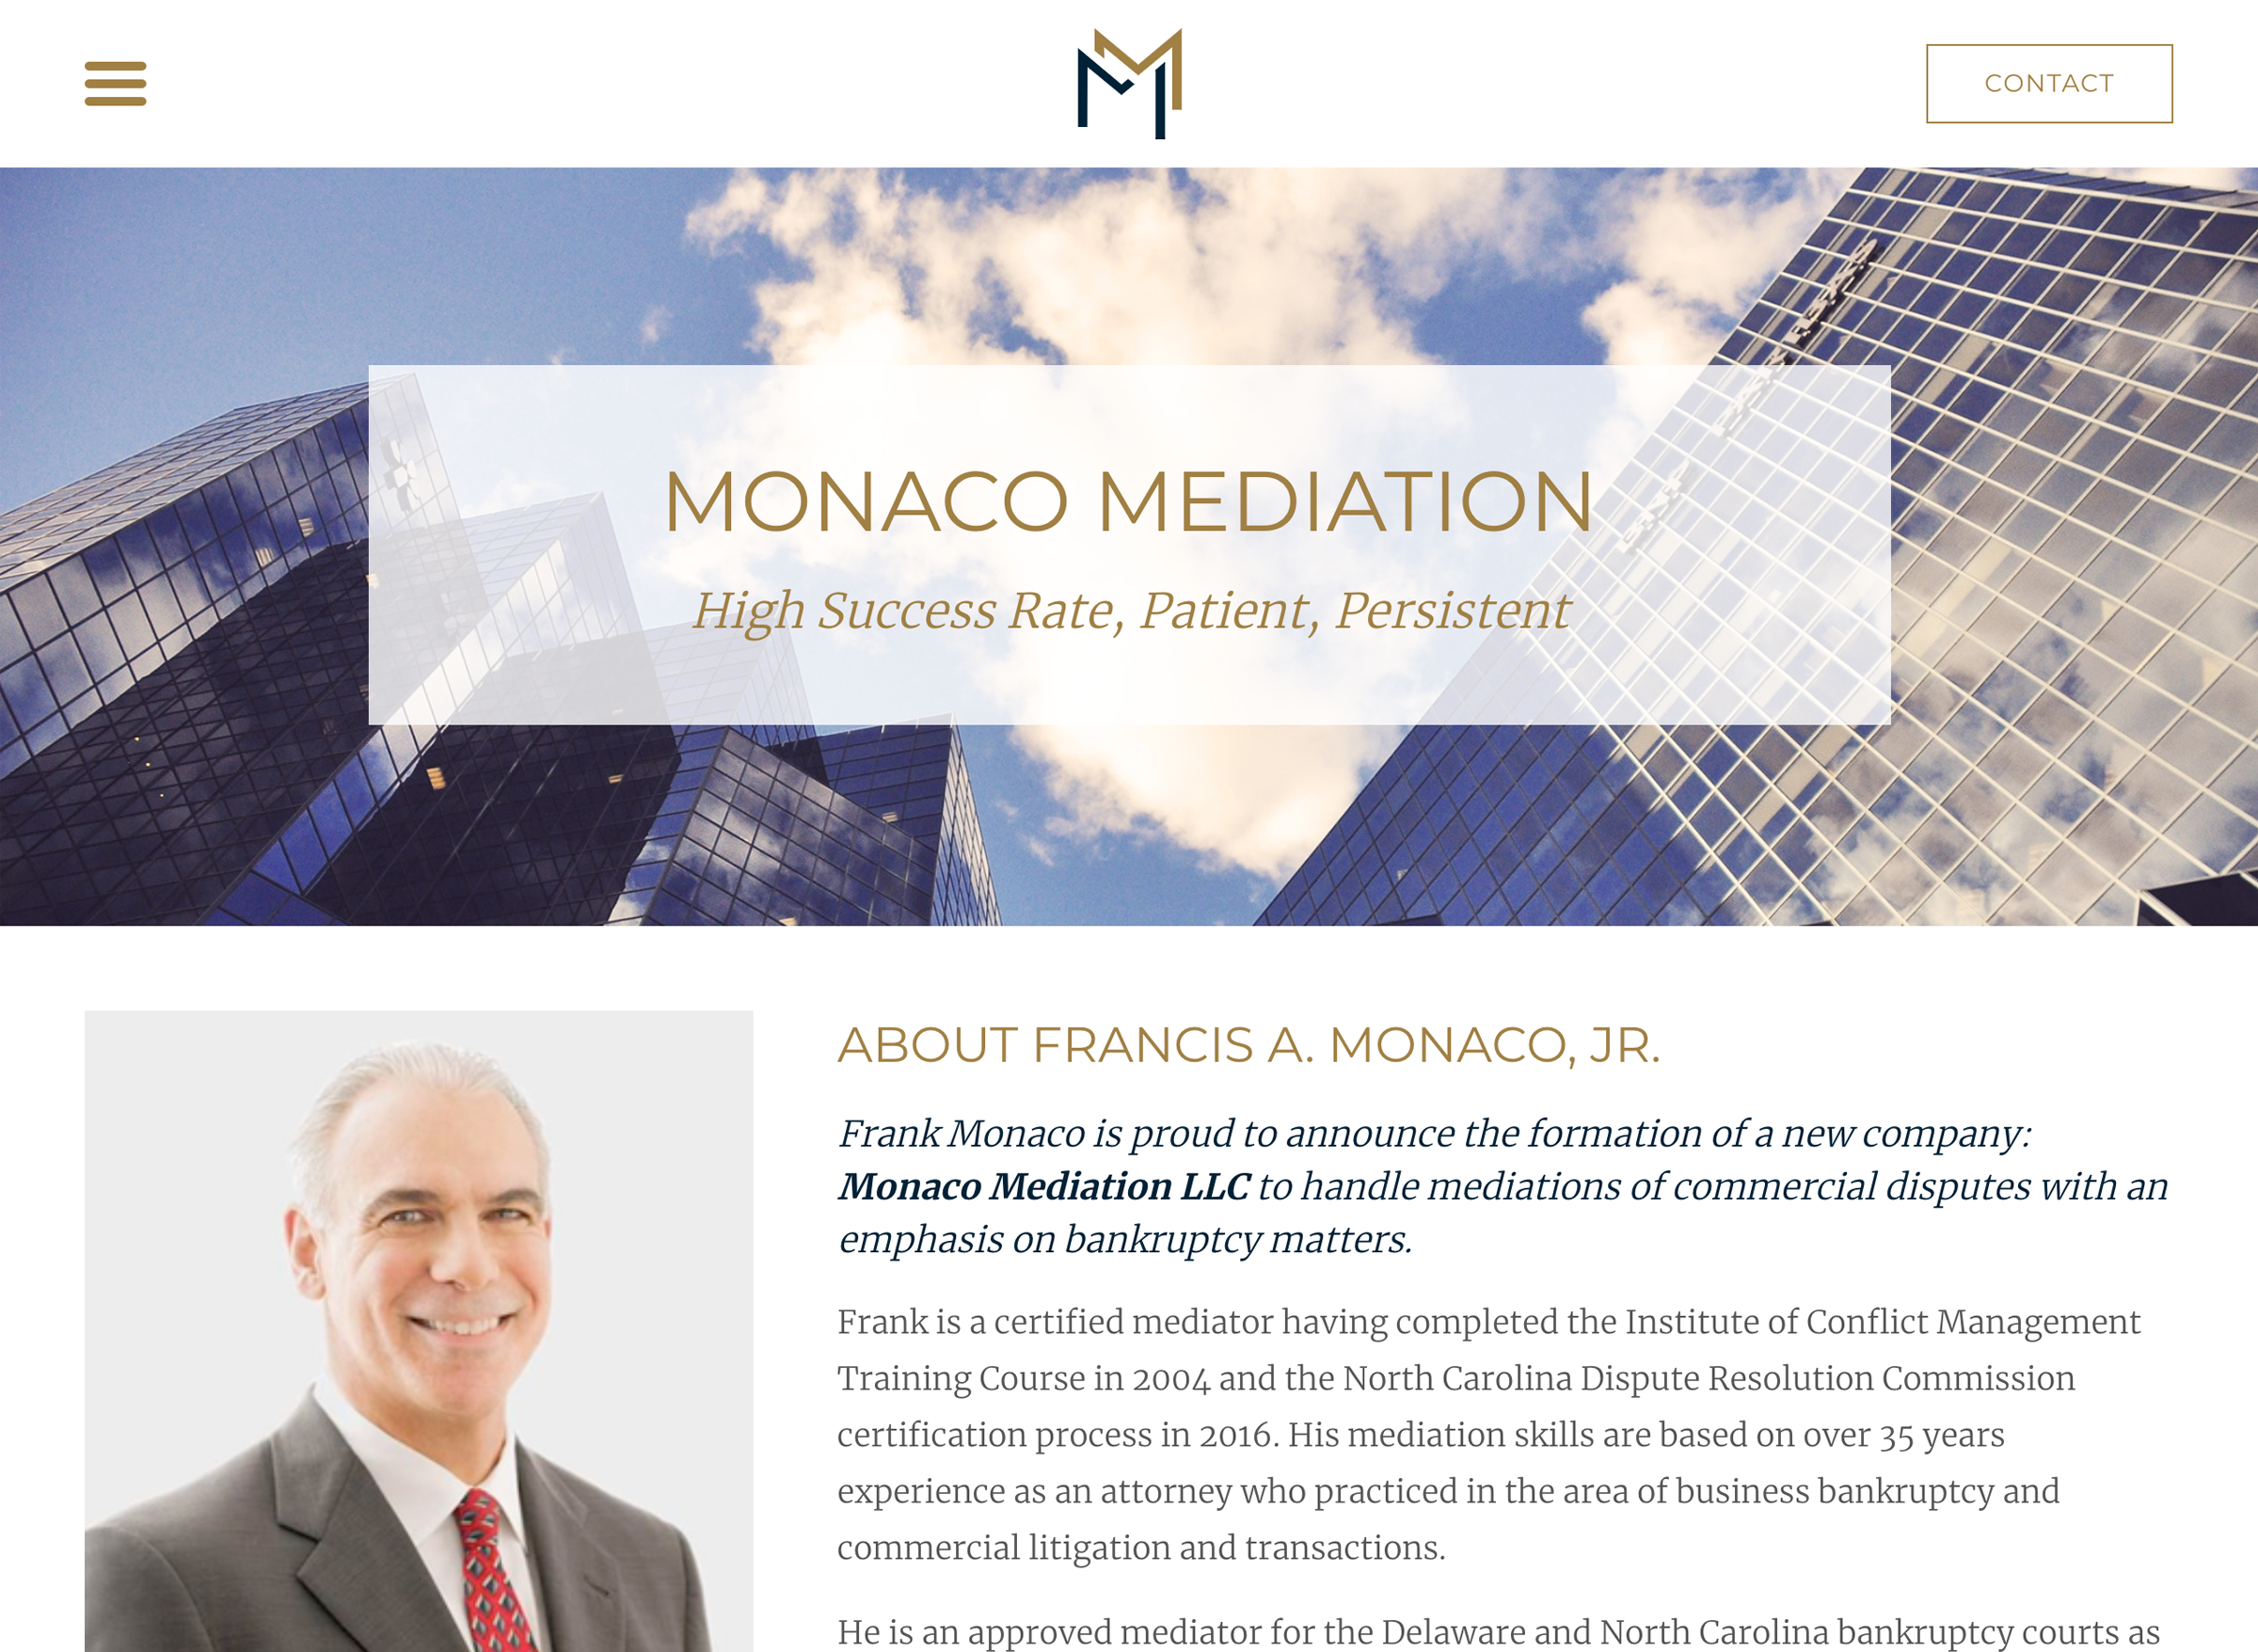 Monaco Mediation LLC